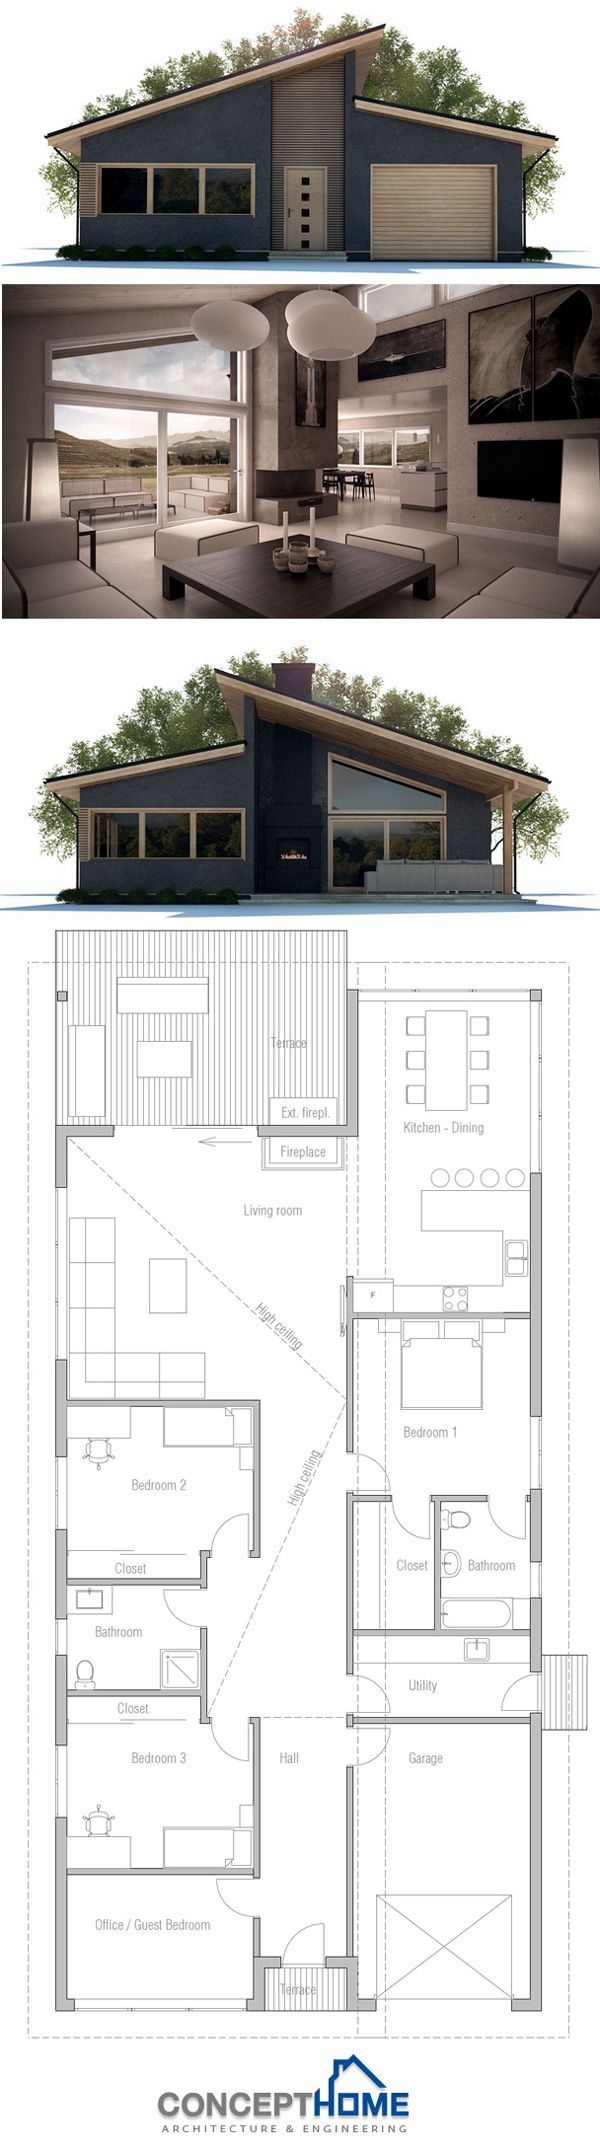 best 25 roof plan ideas on pinterest flat roof house designs great floor pan with garage